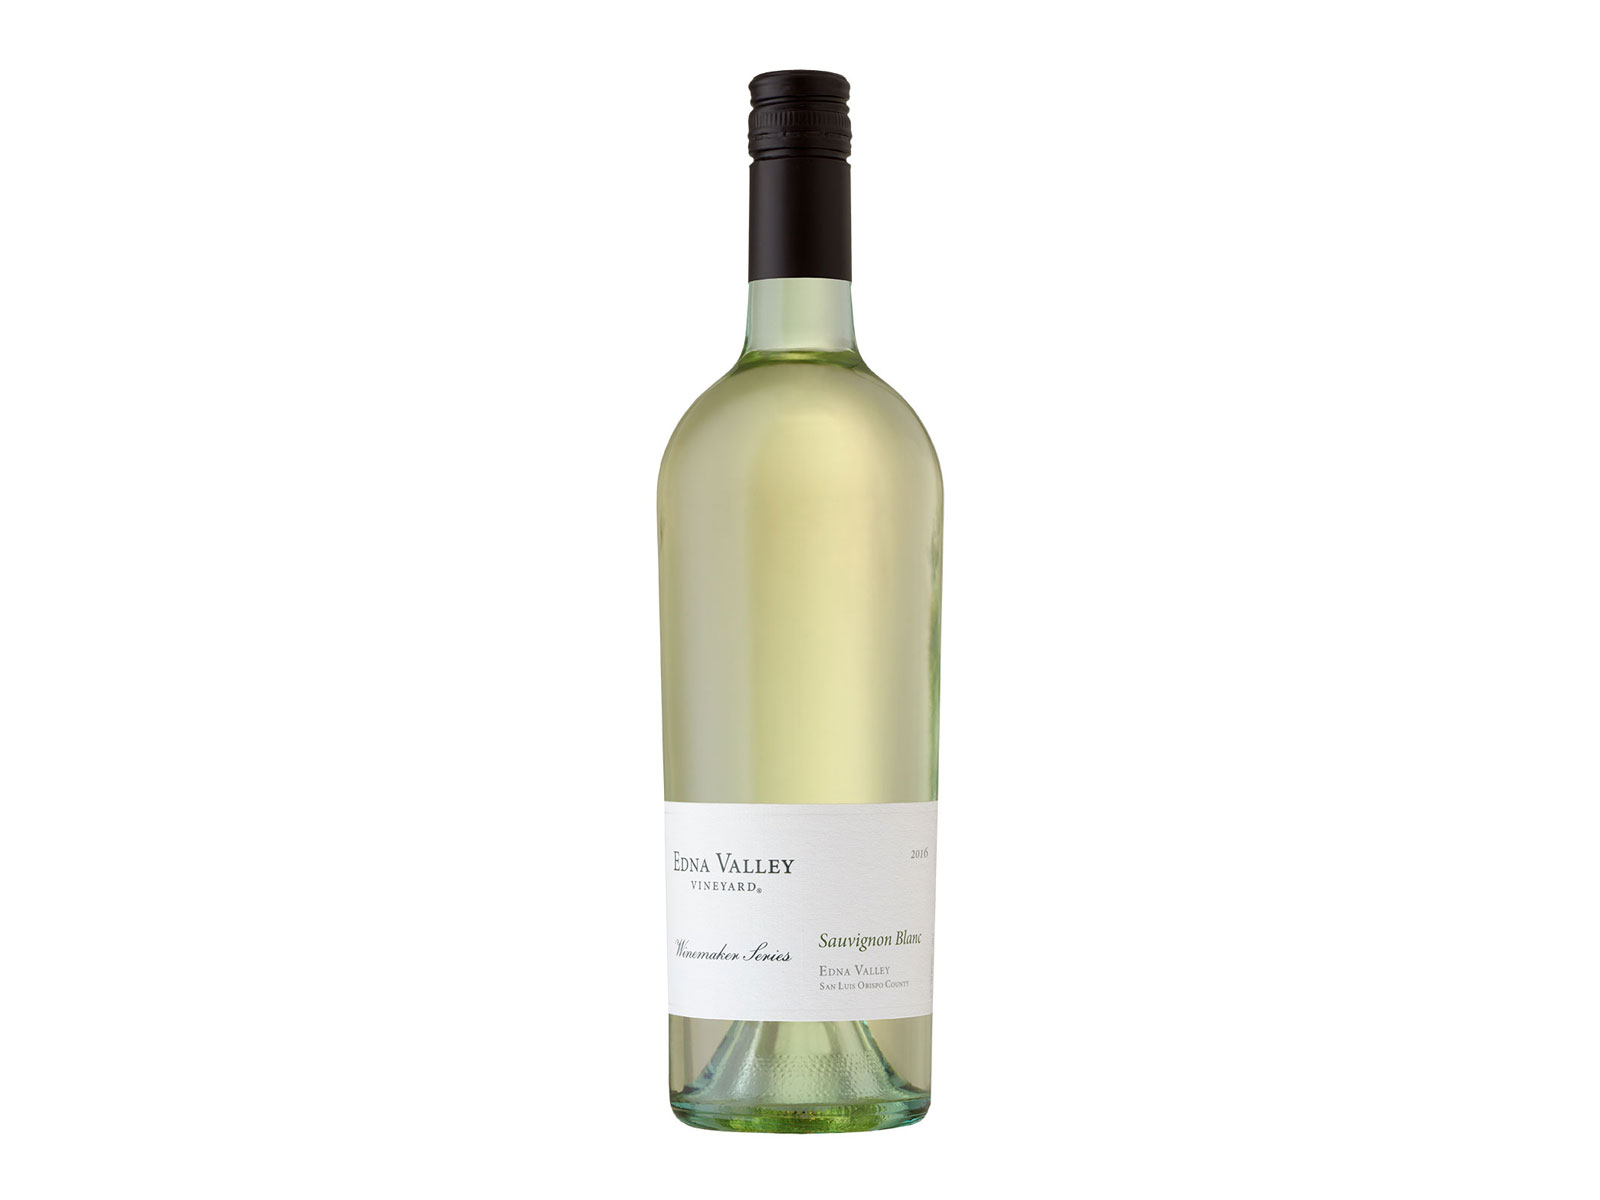 2016 Edna Valley Vineyard Sauvignon Blanc